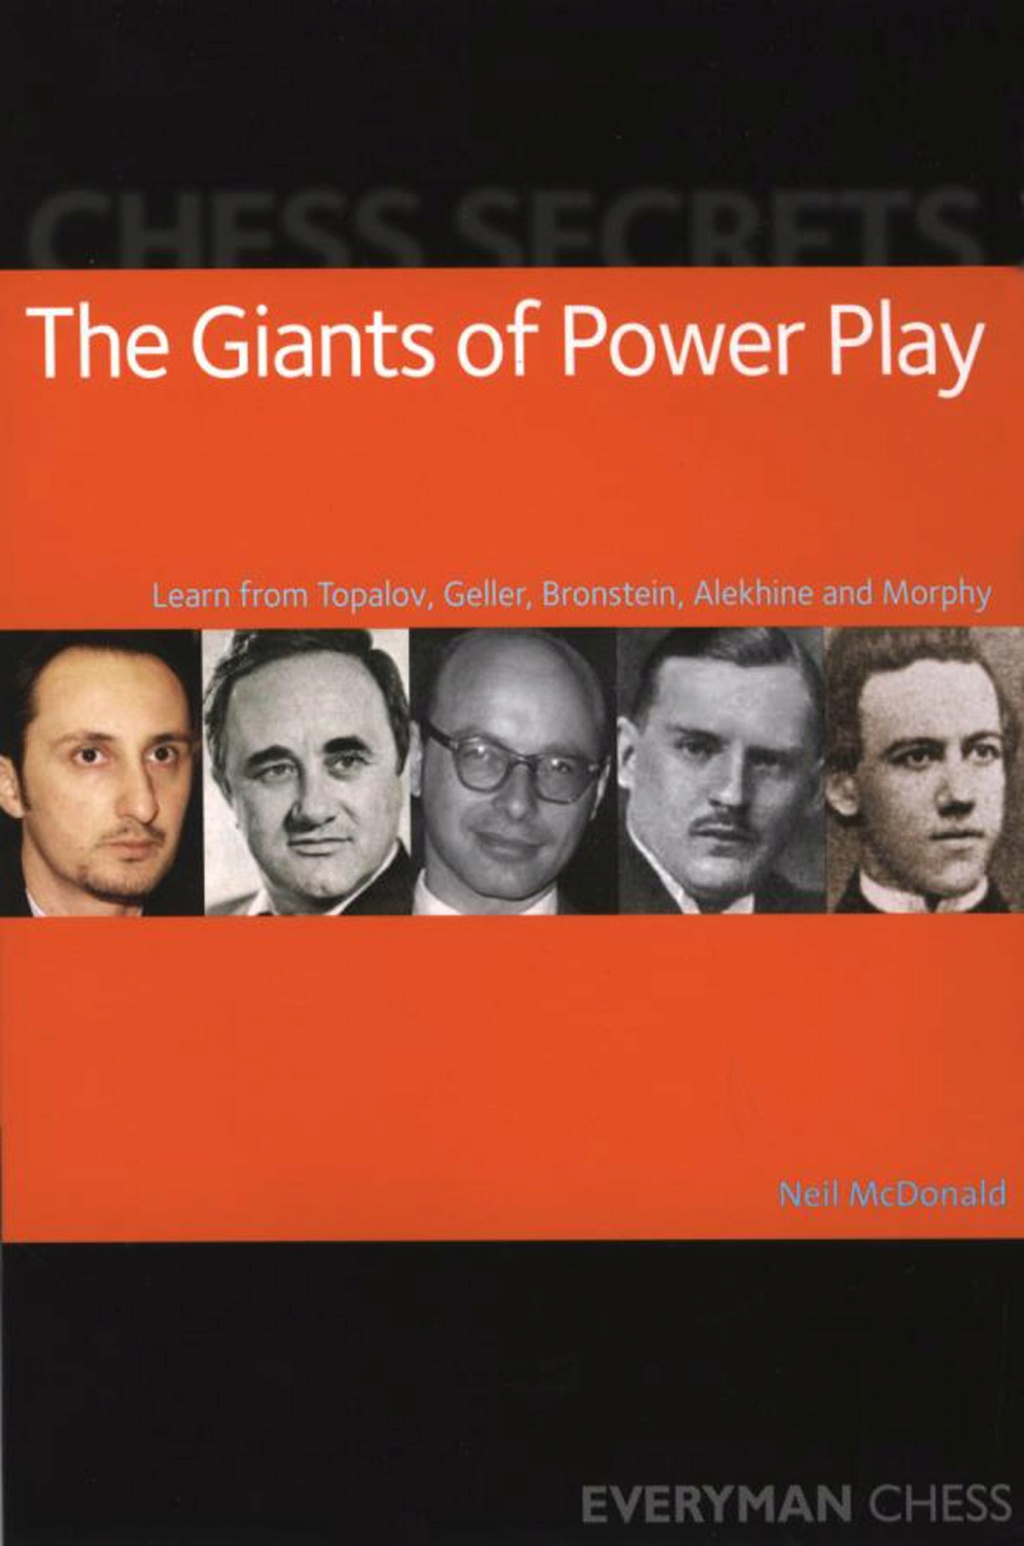 Neil McDonald_Chess secrets_The Giants of Powerplay_PDF+PGN 12310